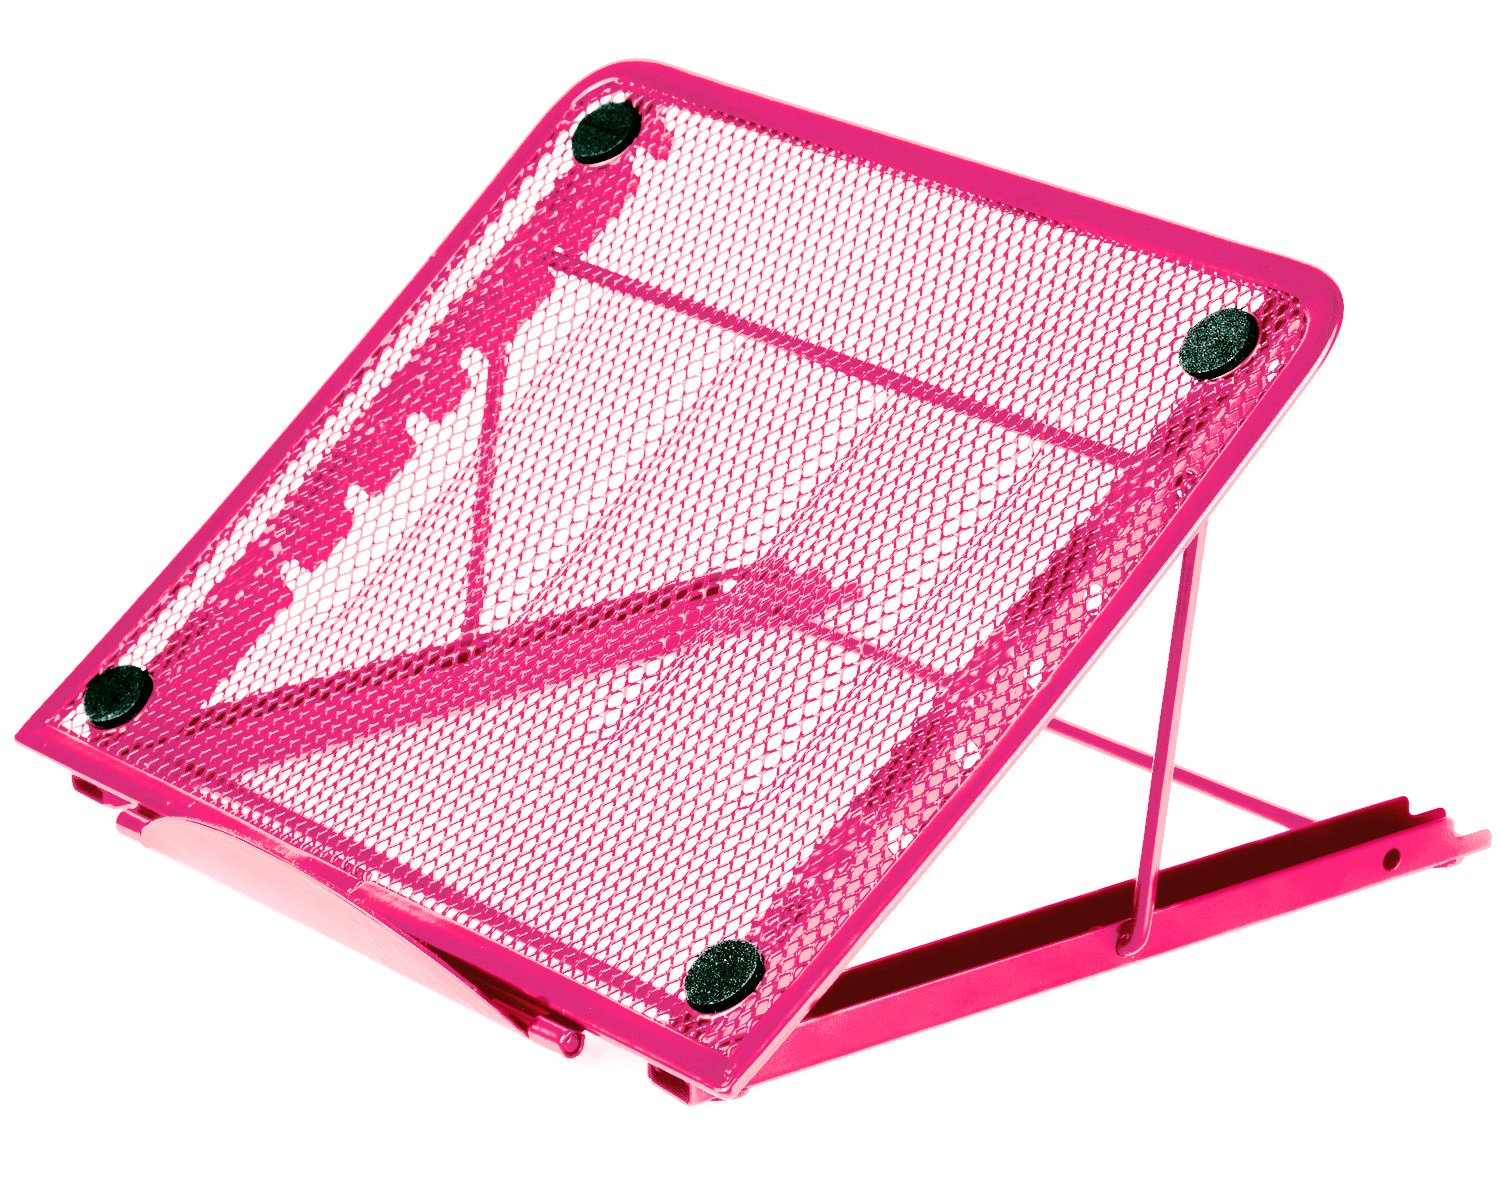 Halter Mesh Ventilated Adjustable Laptop Stand for Laptop/Notebook/iPad/Tablet and more - Green